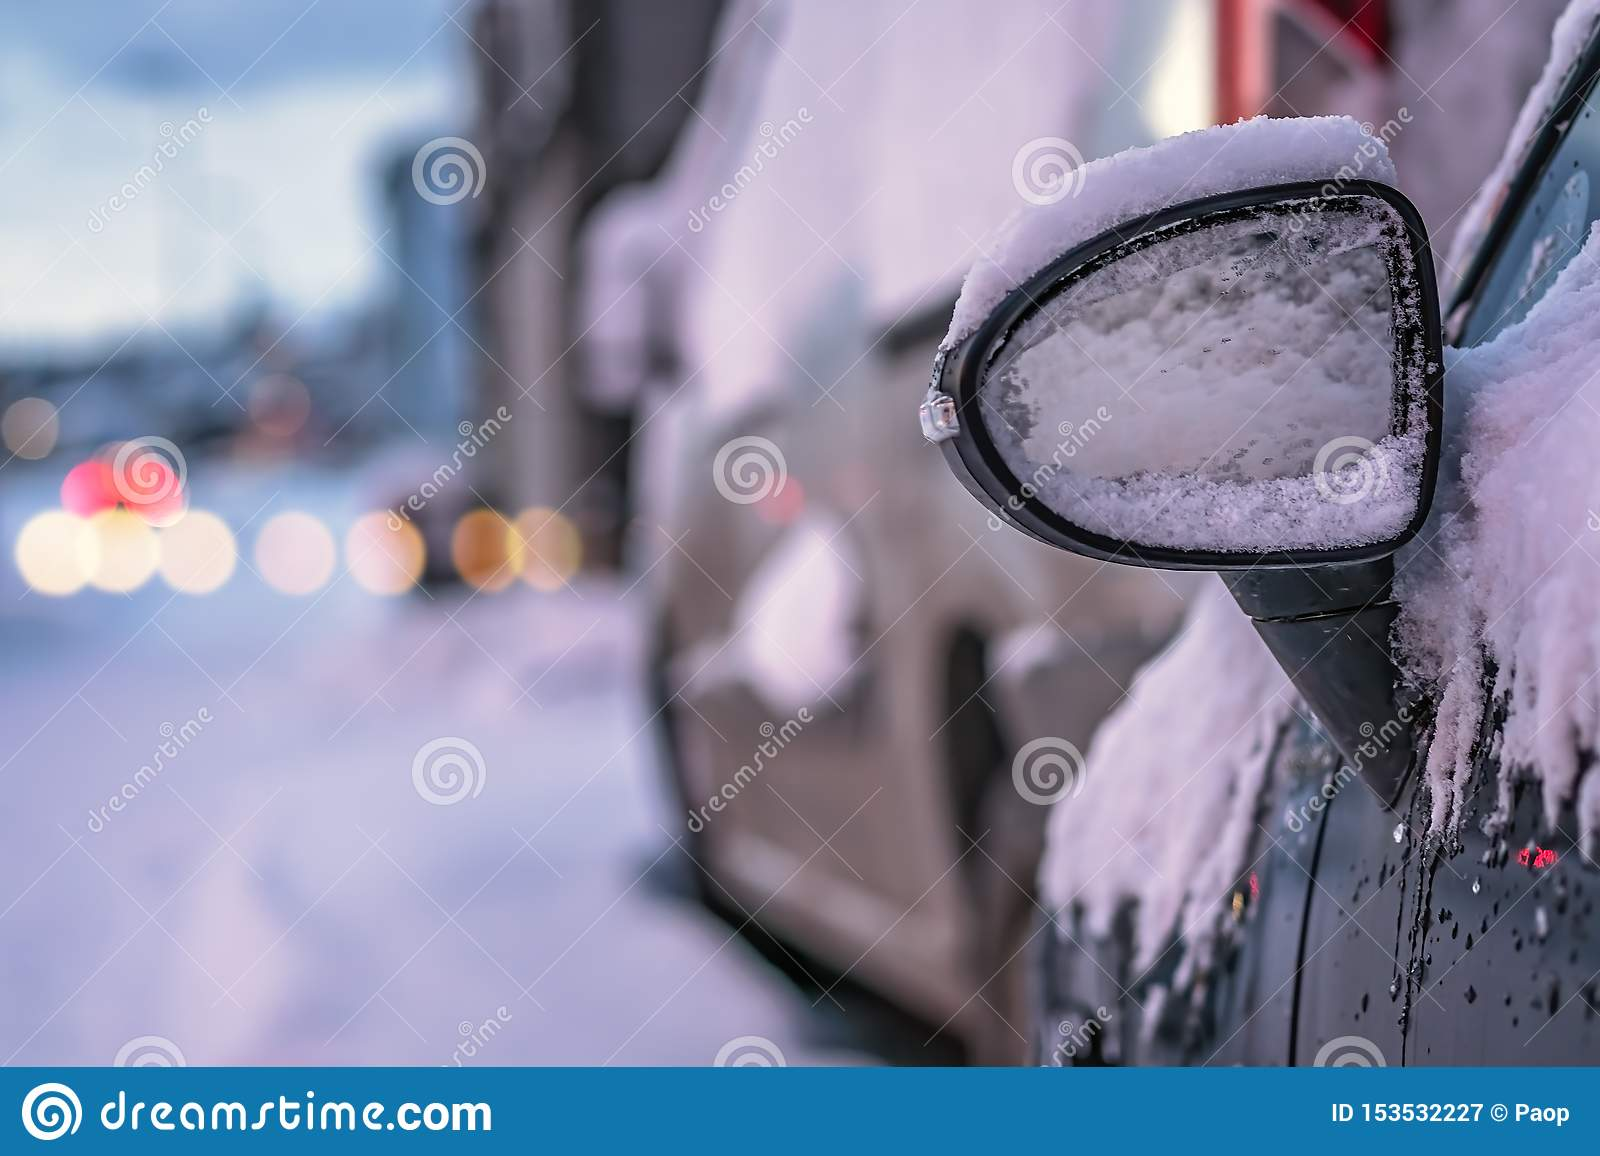 Close up of a car mirror covered in snow